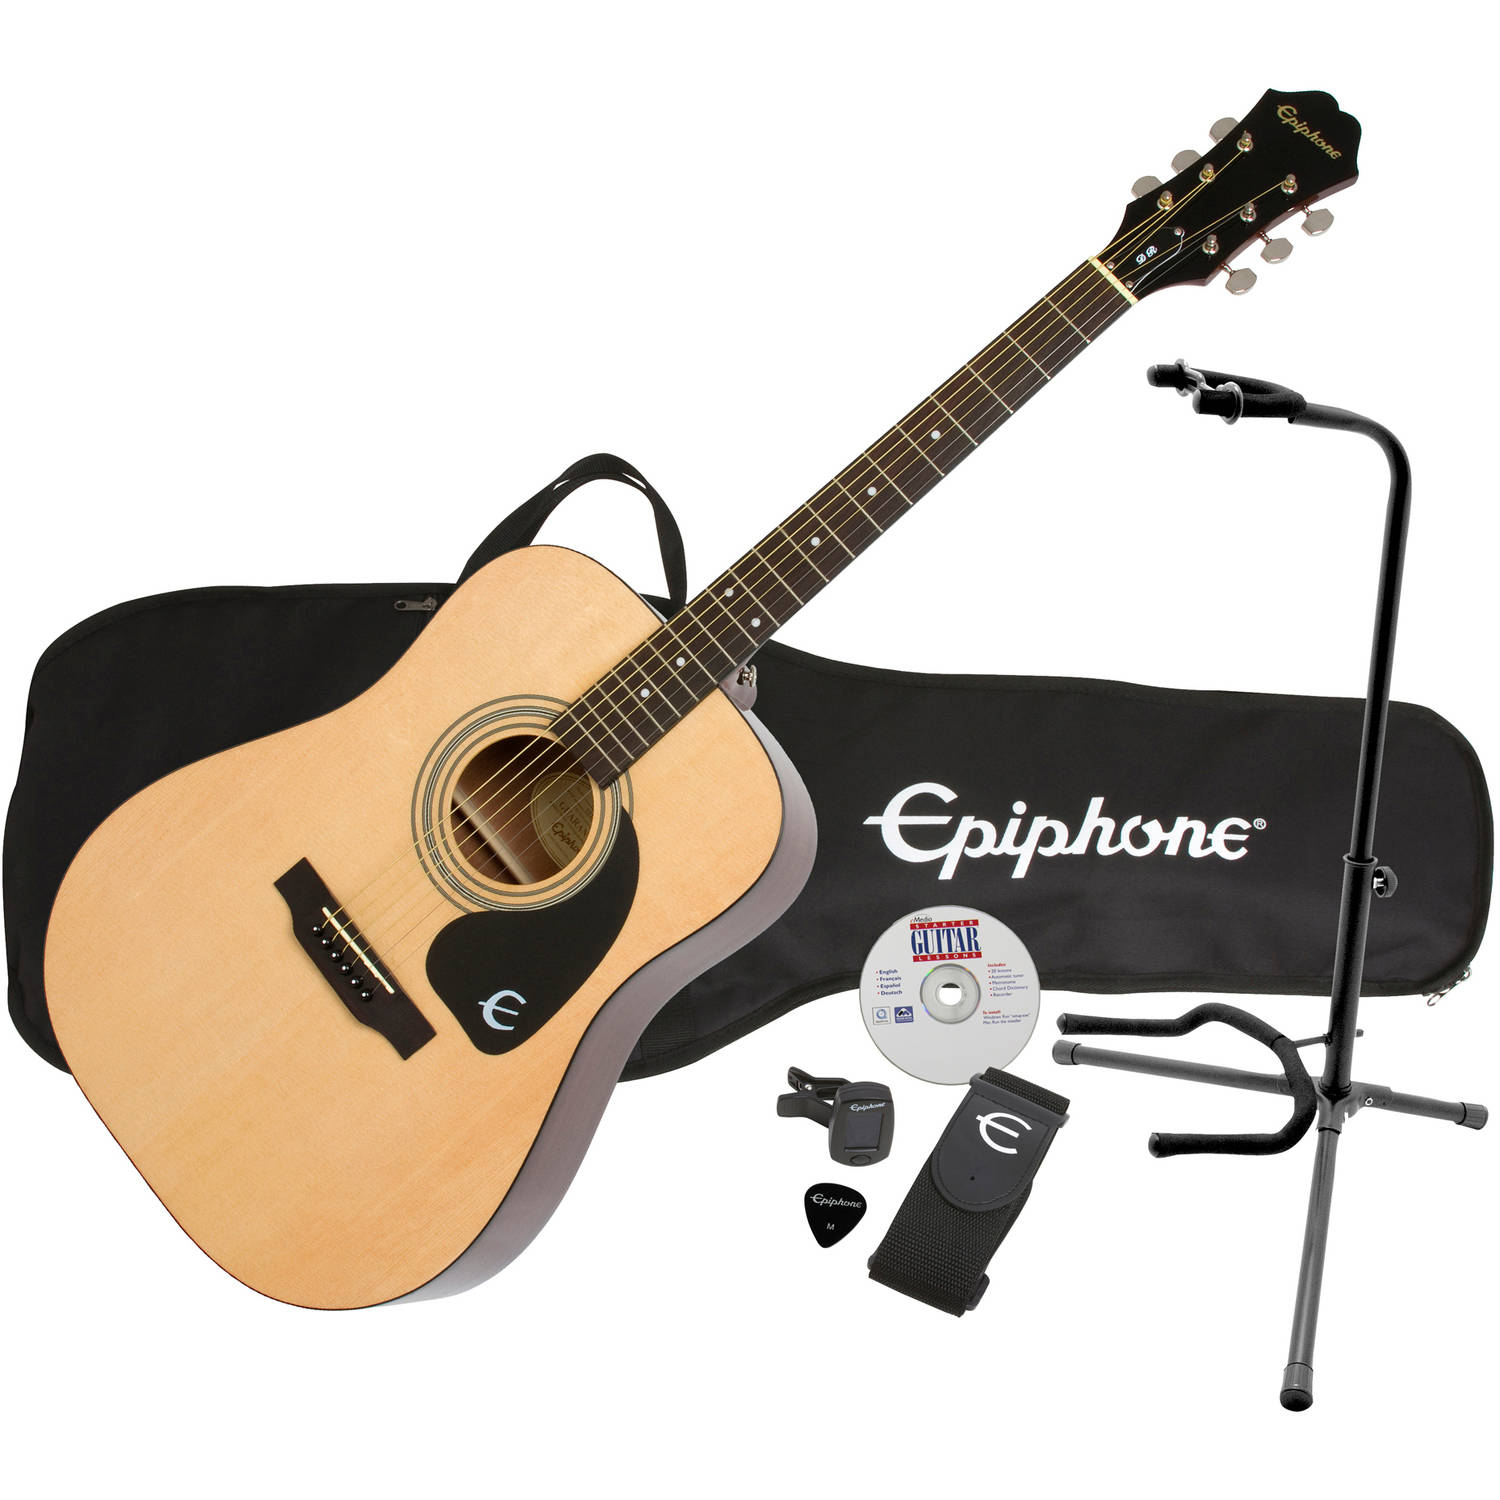 Epiphone DR-100 Exclusive Steel String Acoustic Guitar Pack Plus with eMedia Instructional Software and On Stage XCG4 Guitar Stand